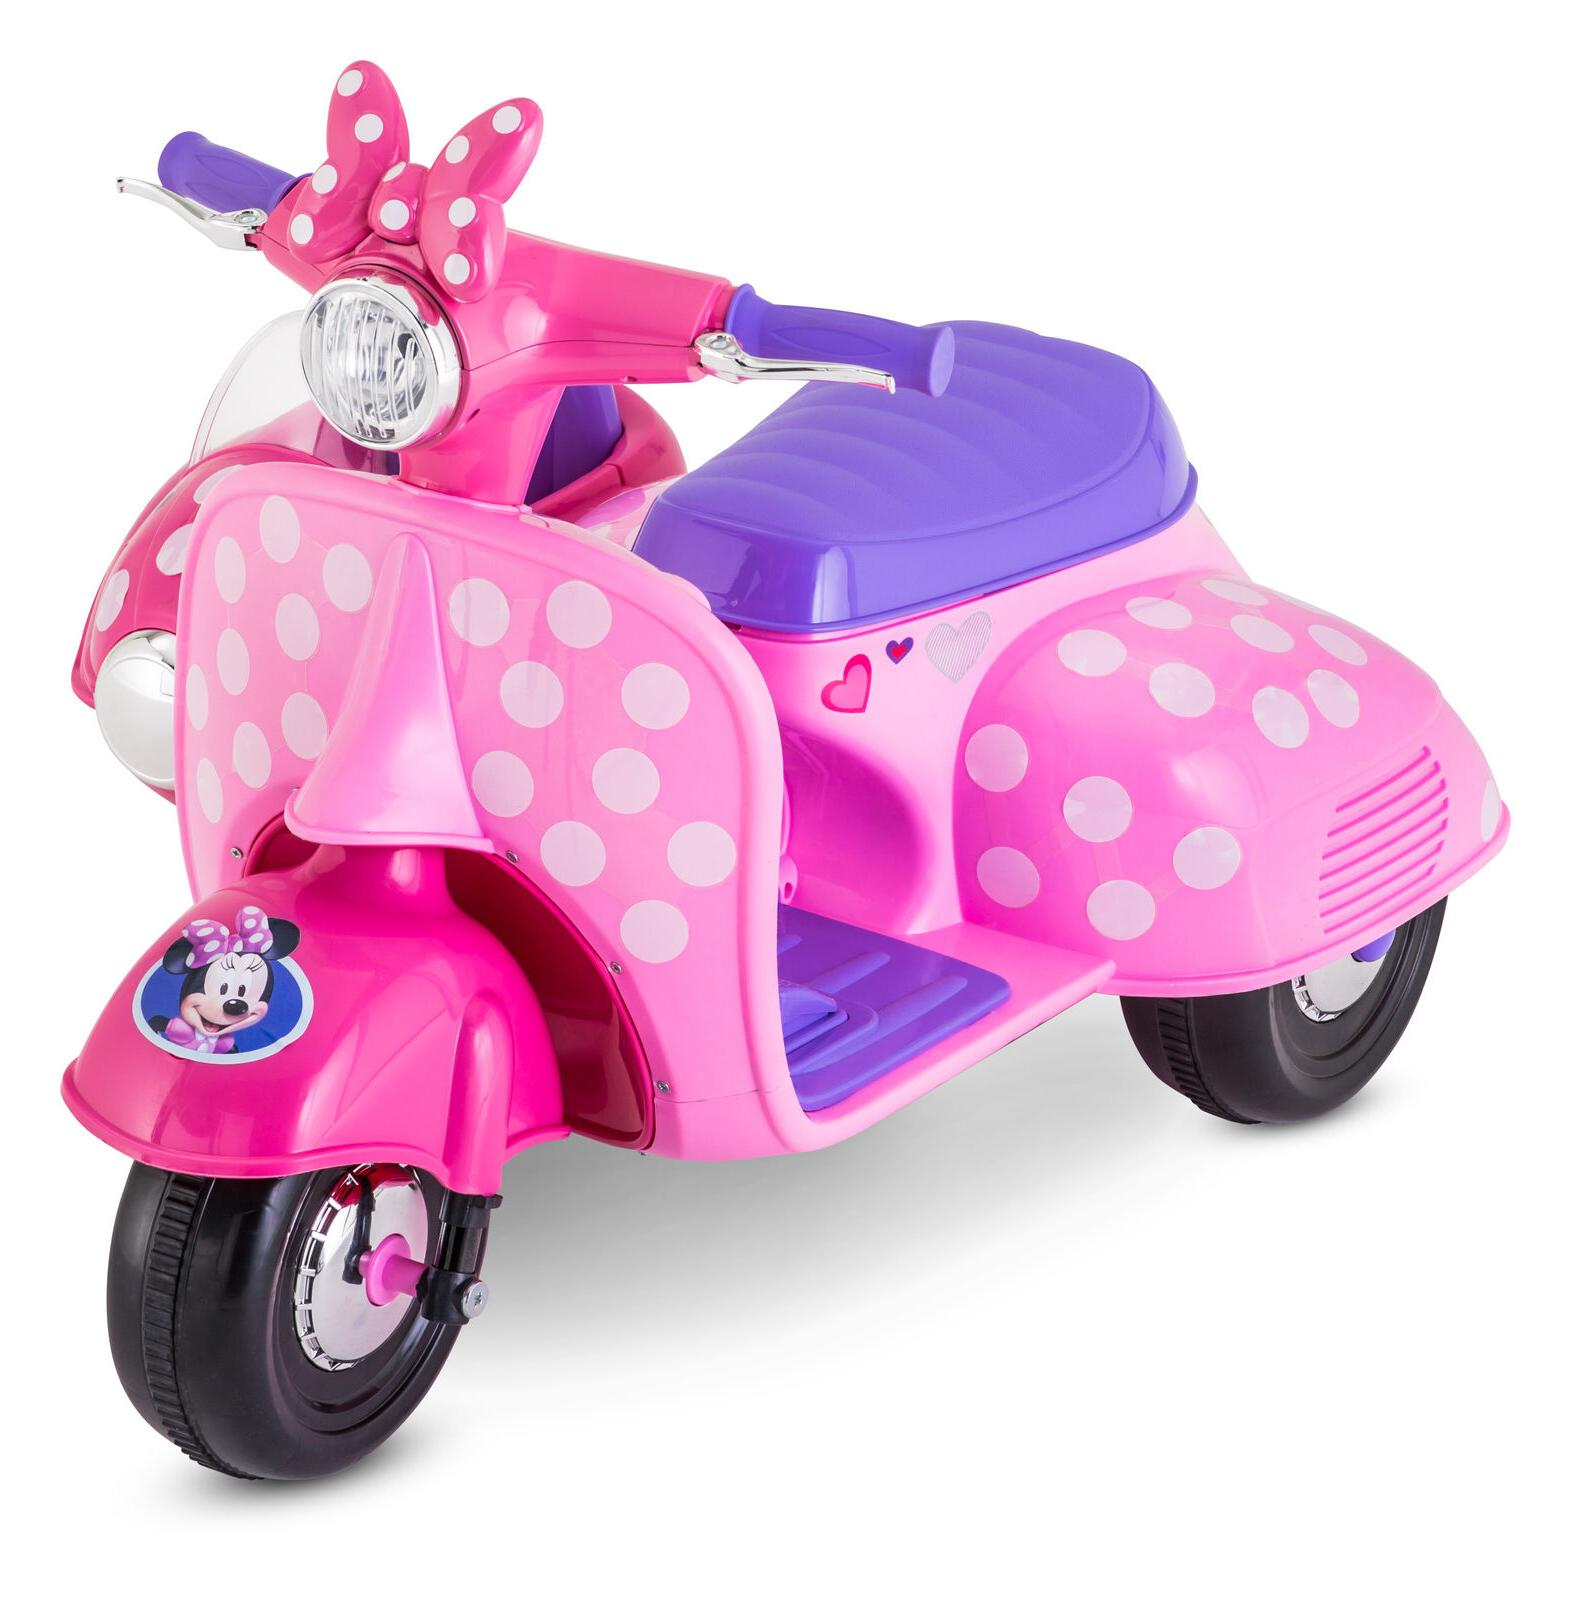 Minnie Mouse On Toy For Girls Sidecar Toddler